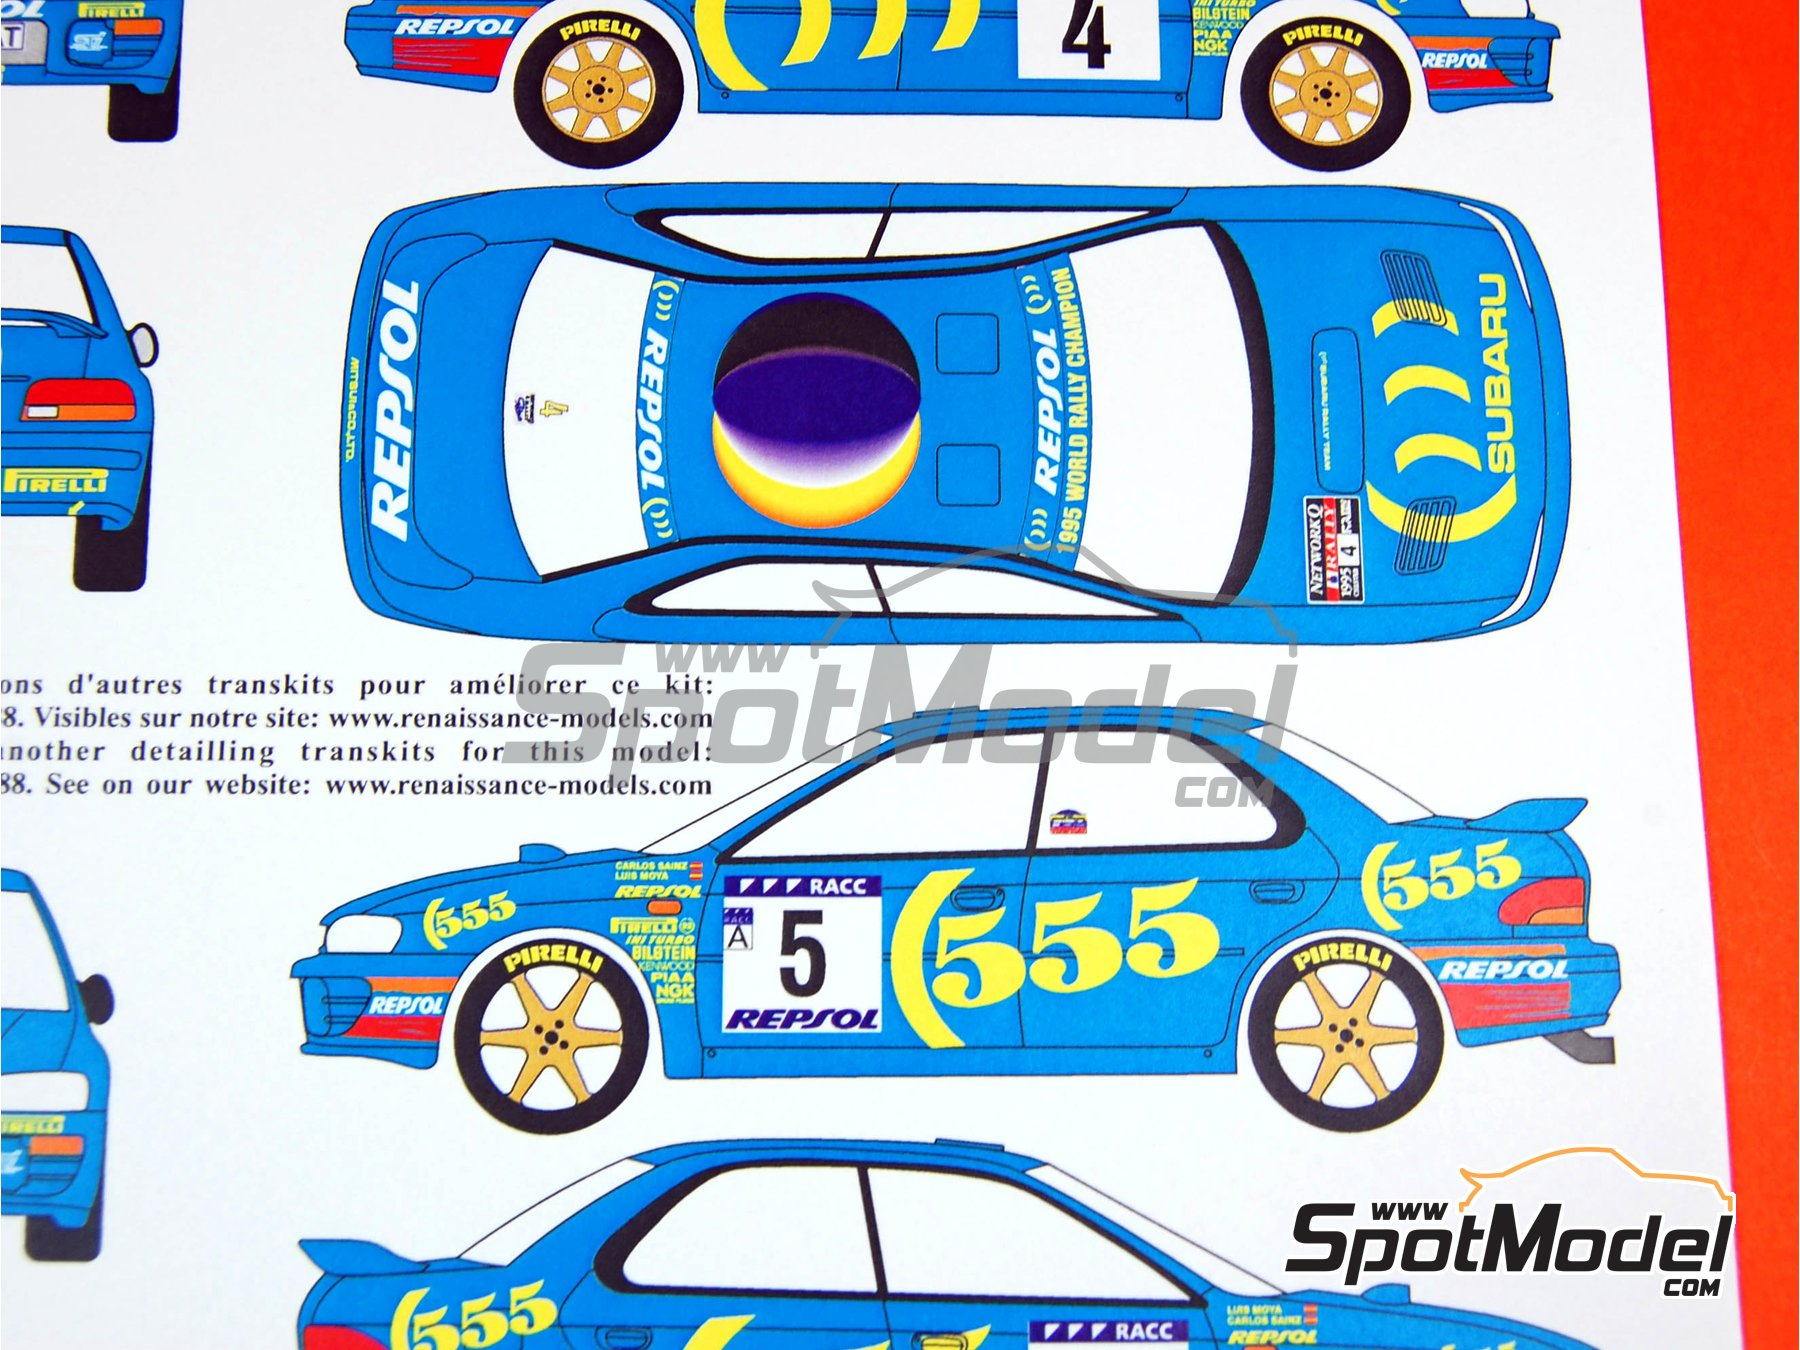 Image 4: Subaru Impreza 555 Group A Repsol - Catalunya Costa Dorada RACC Rally, Great Britain RAC Rally 1995 | Marking / livery in 1/24 scale manufactured by Renaissance Models (ref. TK24-289)